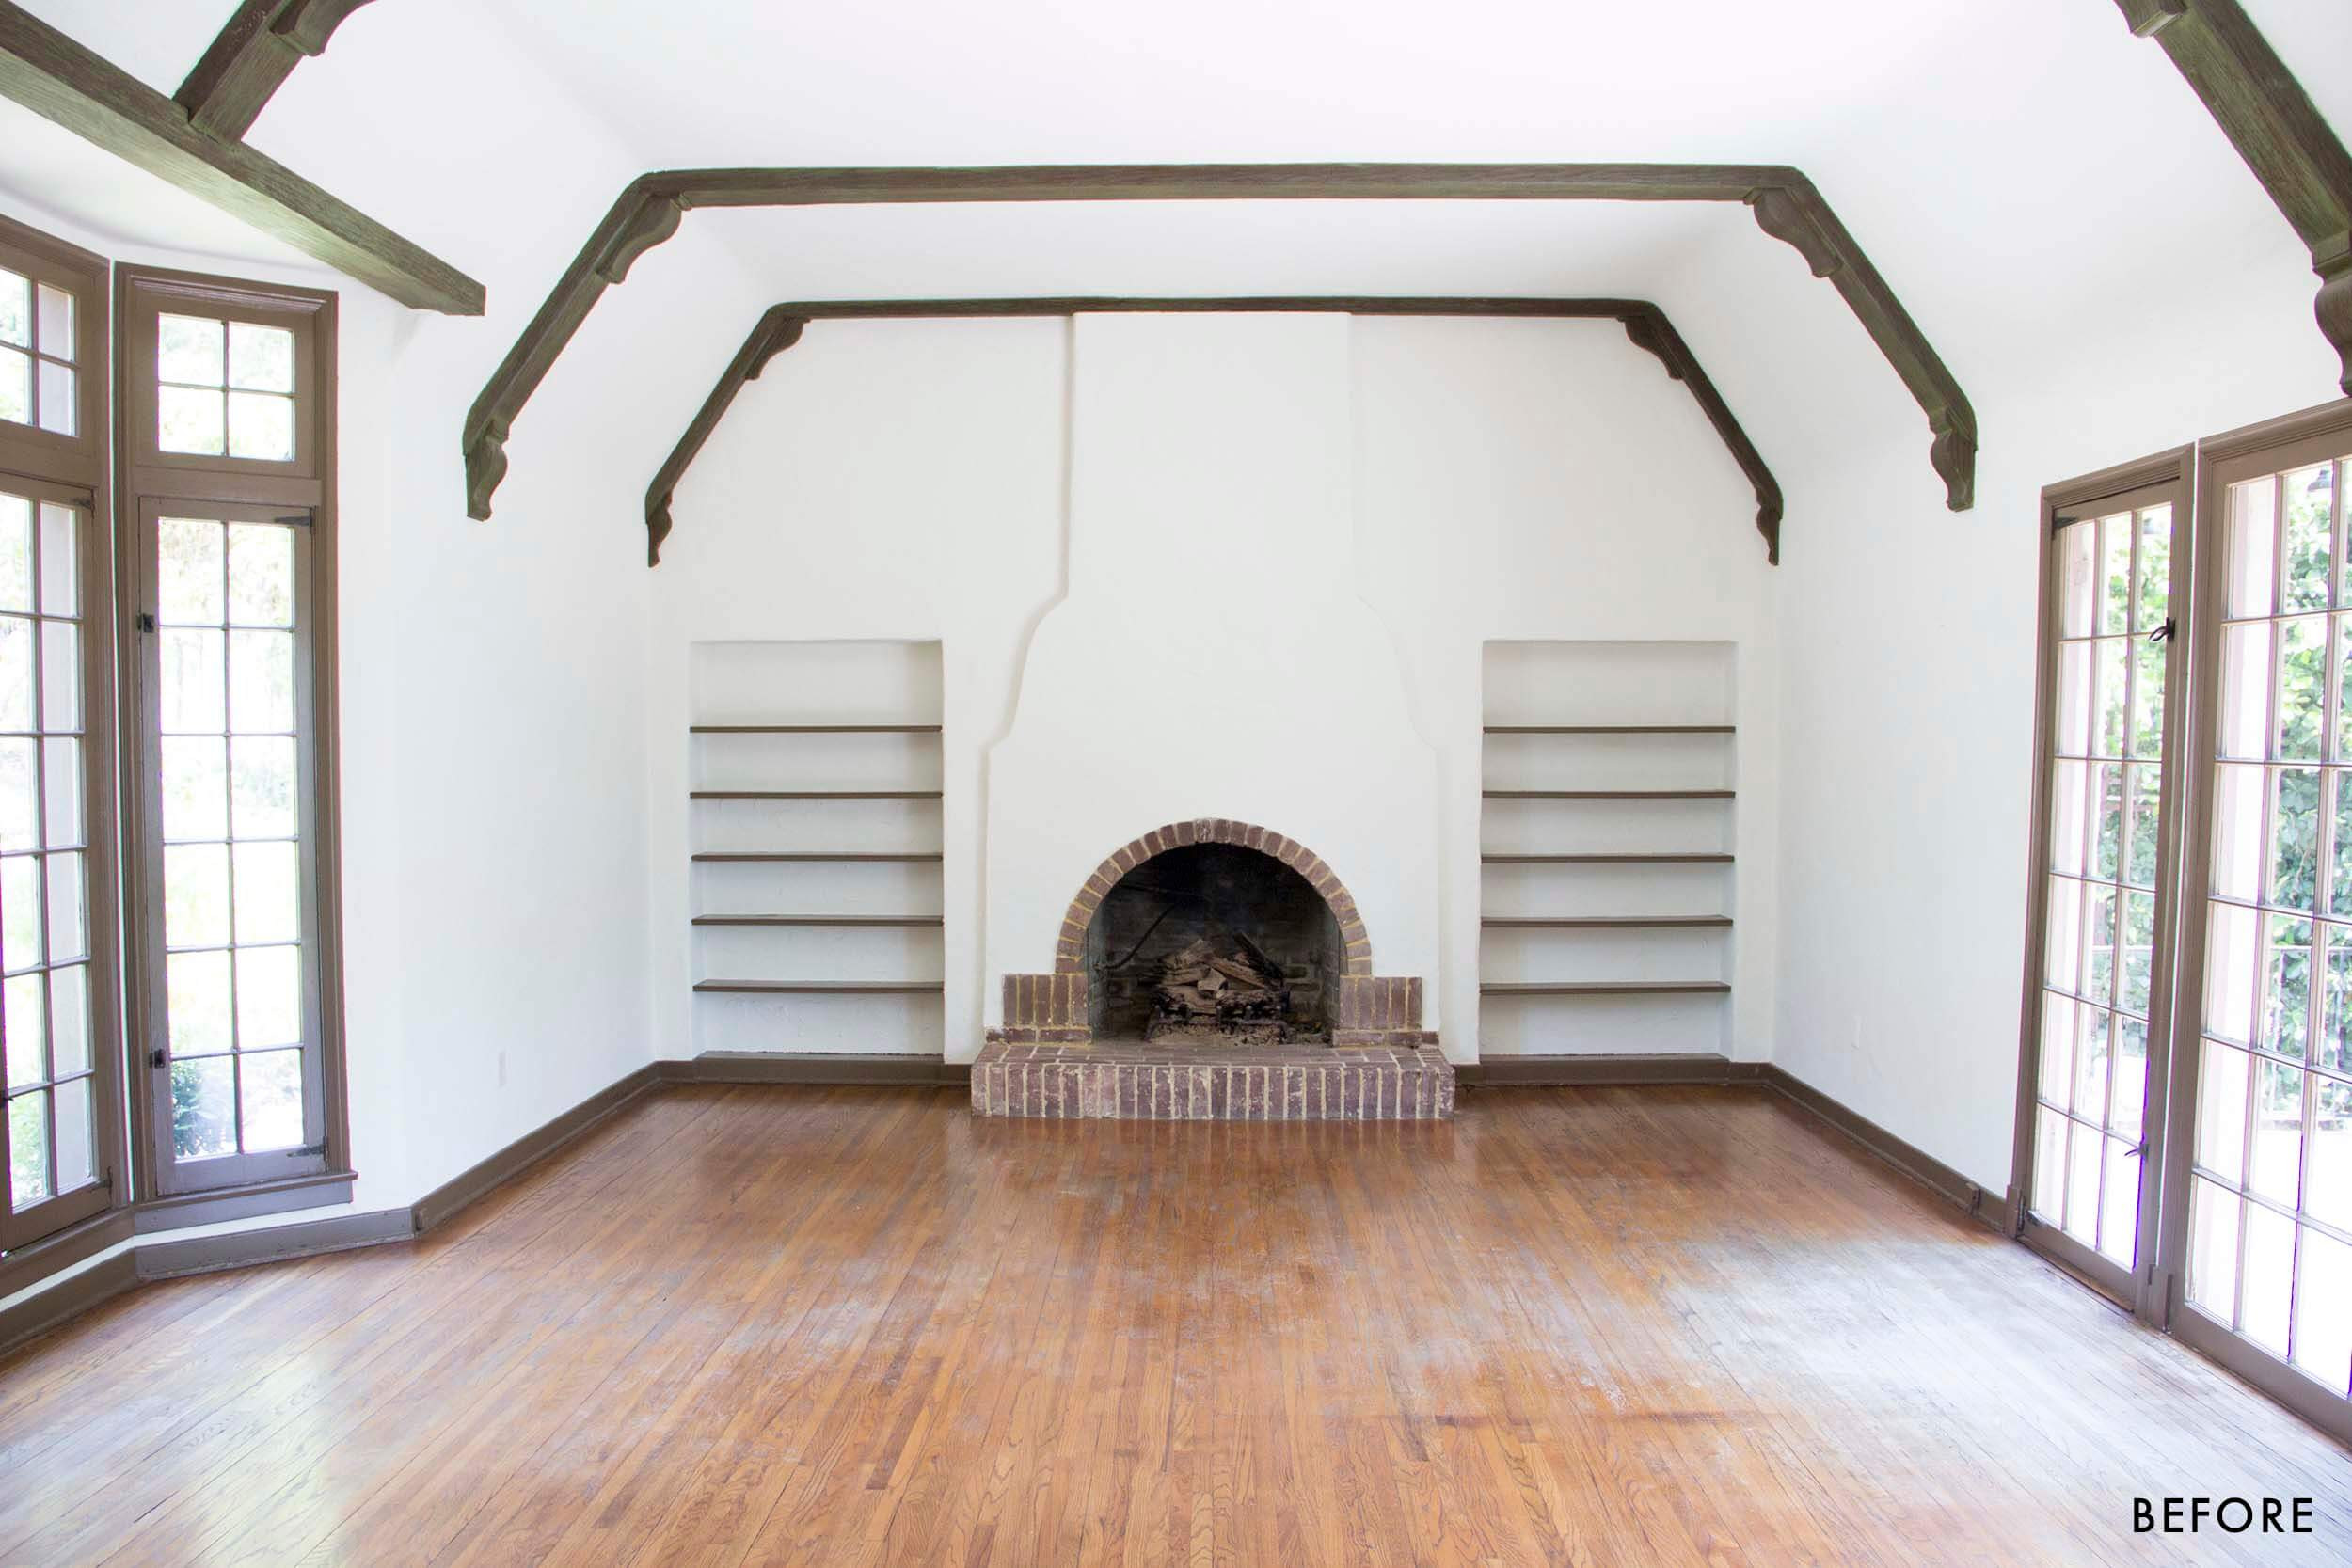 how hard to refinish hardwood floors of how we refinished our wood beams emily henderson pertaining to emily henderson waverly living room new before emily henderson waverly living room before closeup